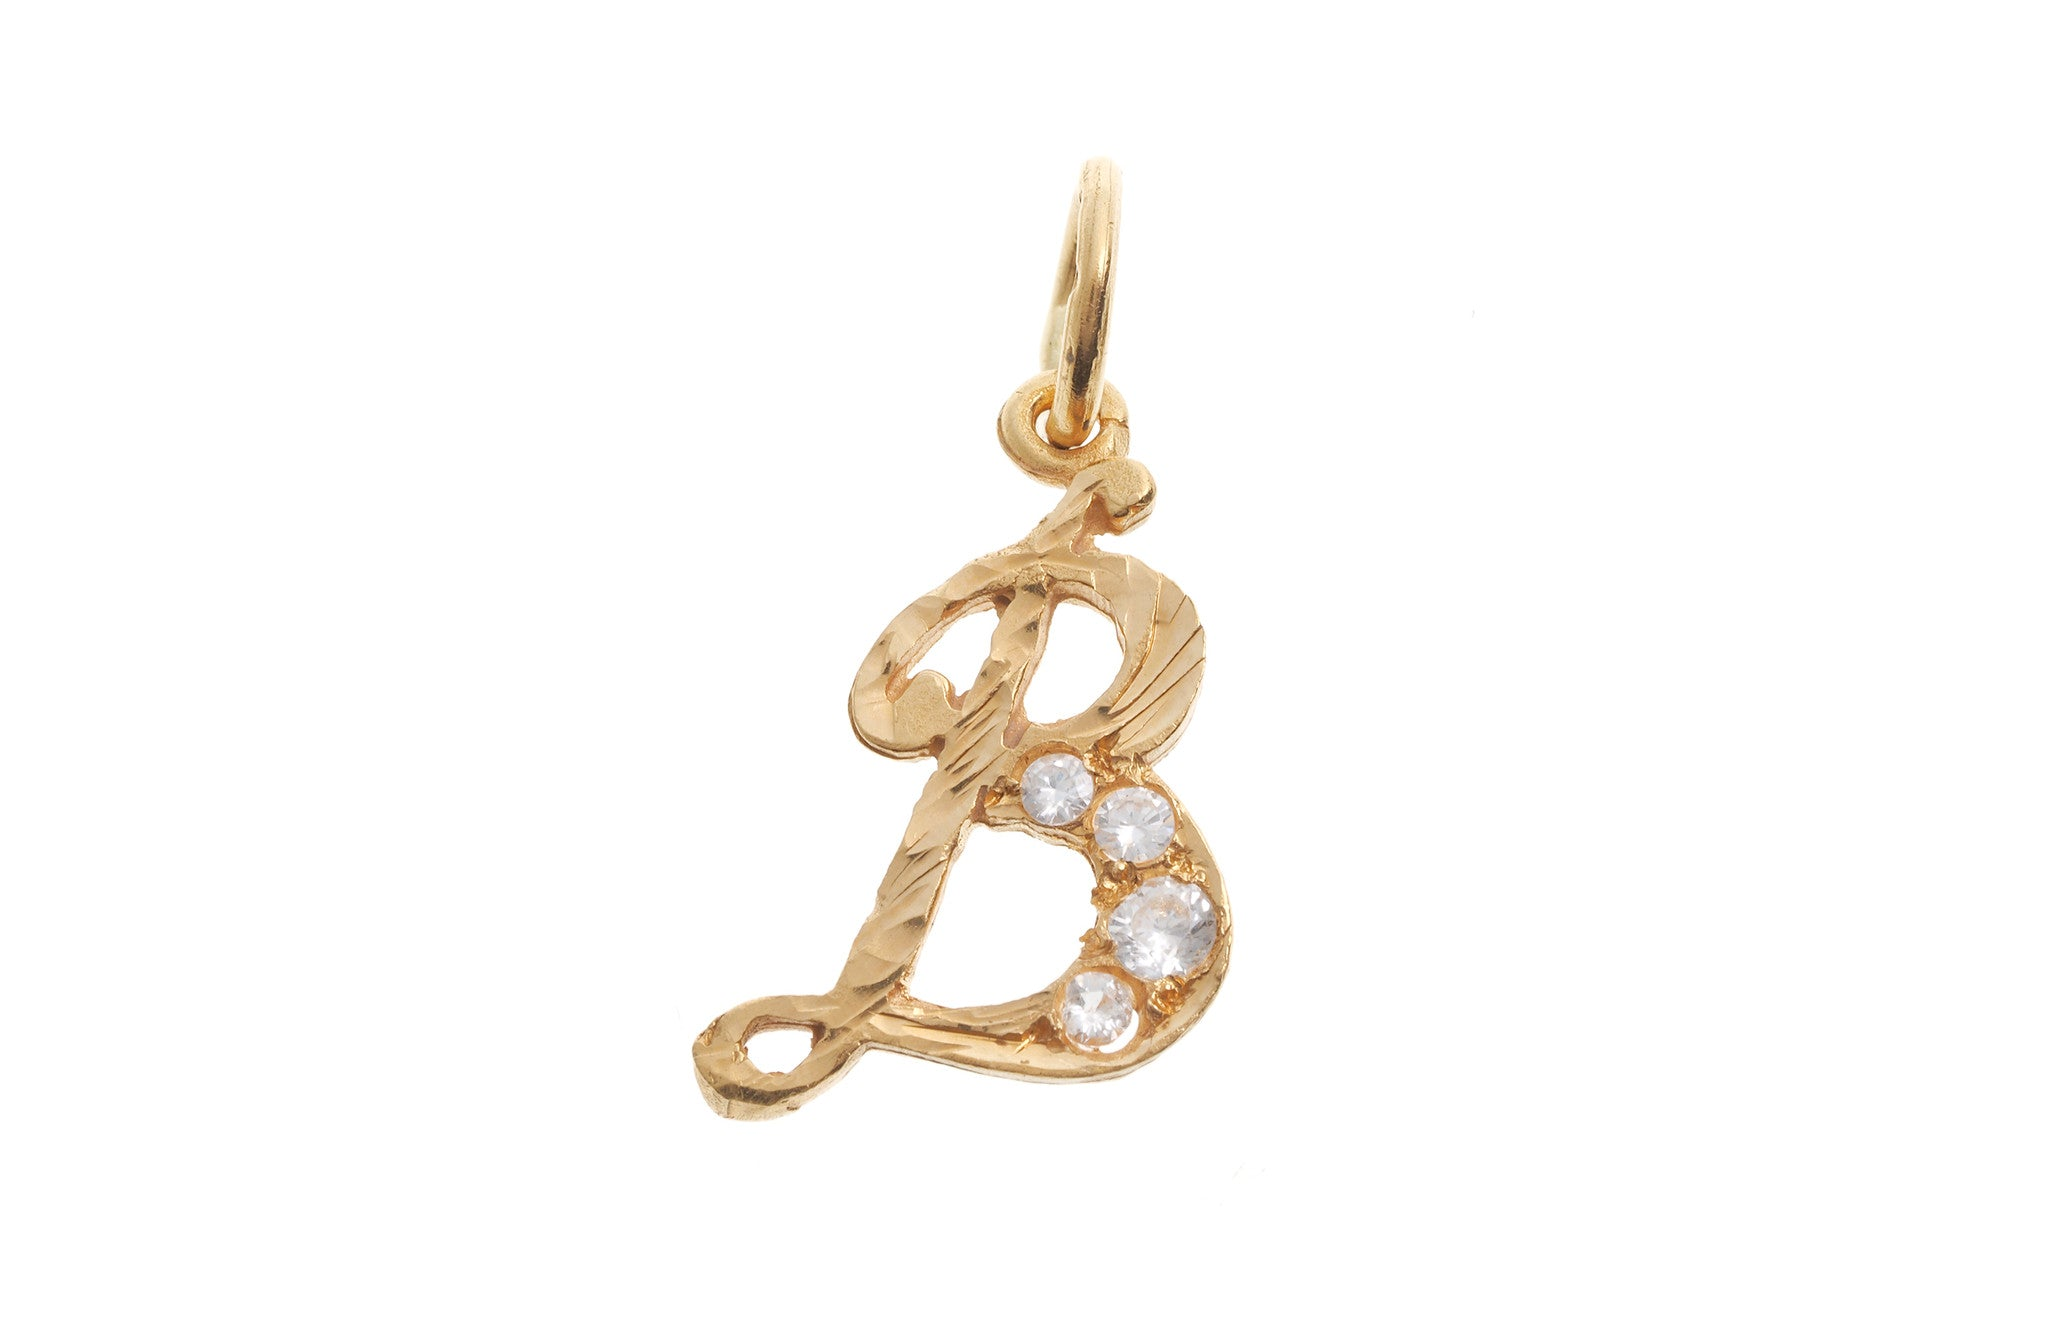 'B' Initial Pendant 22ct Yellow Gold Cubic Zirconia (1.8g) P-5600